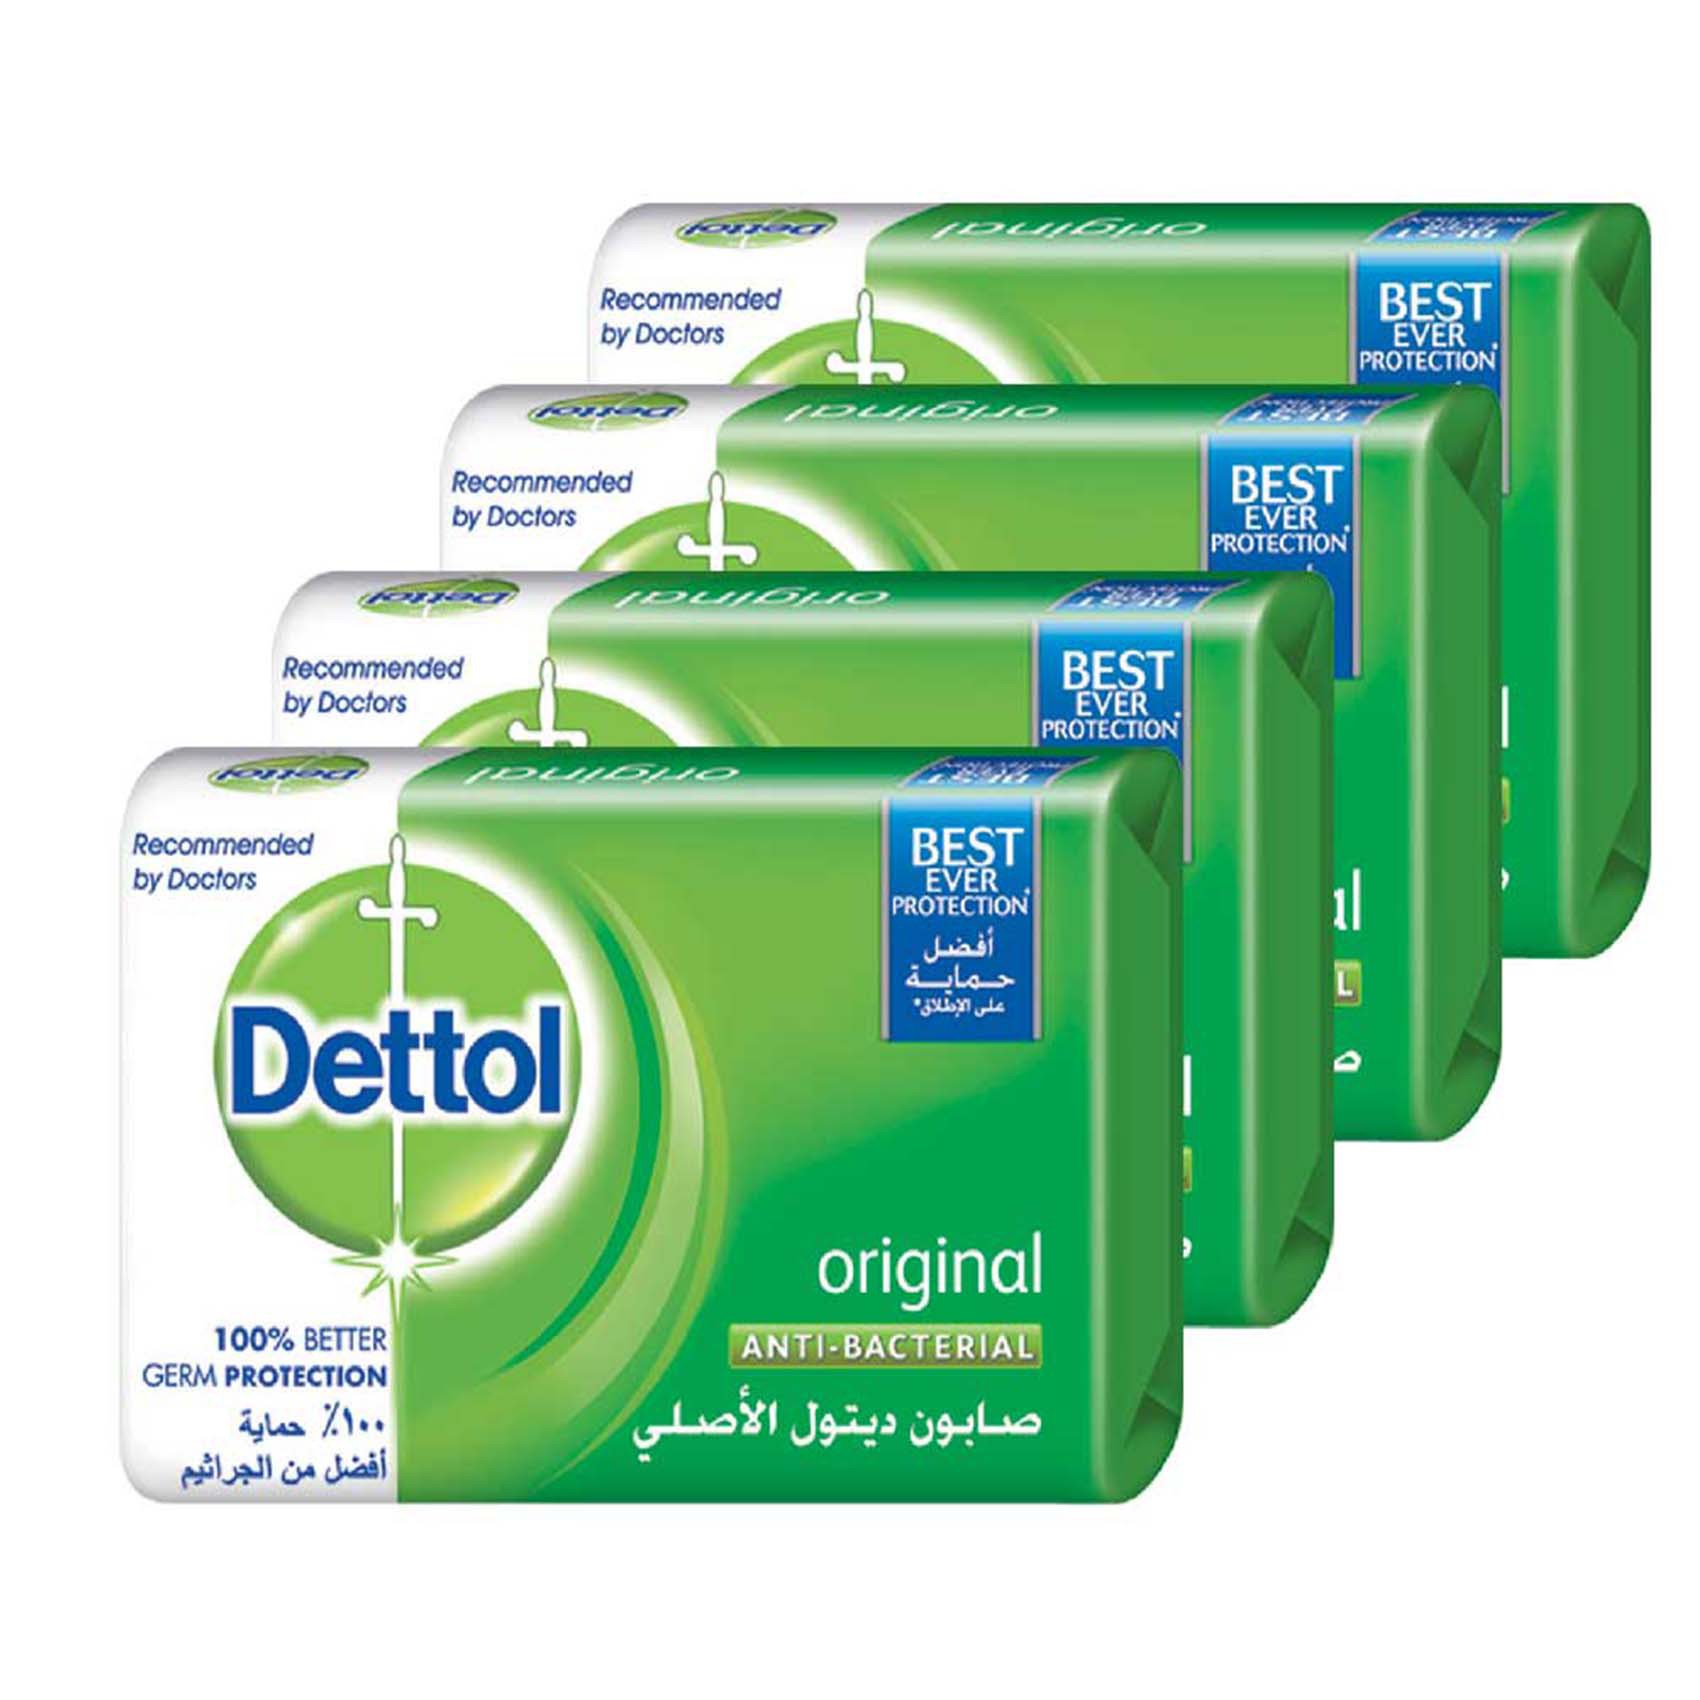 Buy Dettol Original Anti Bacterial Soap 4 X 165 G Online In Ksa Series Package Gm 3 1 F